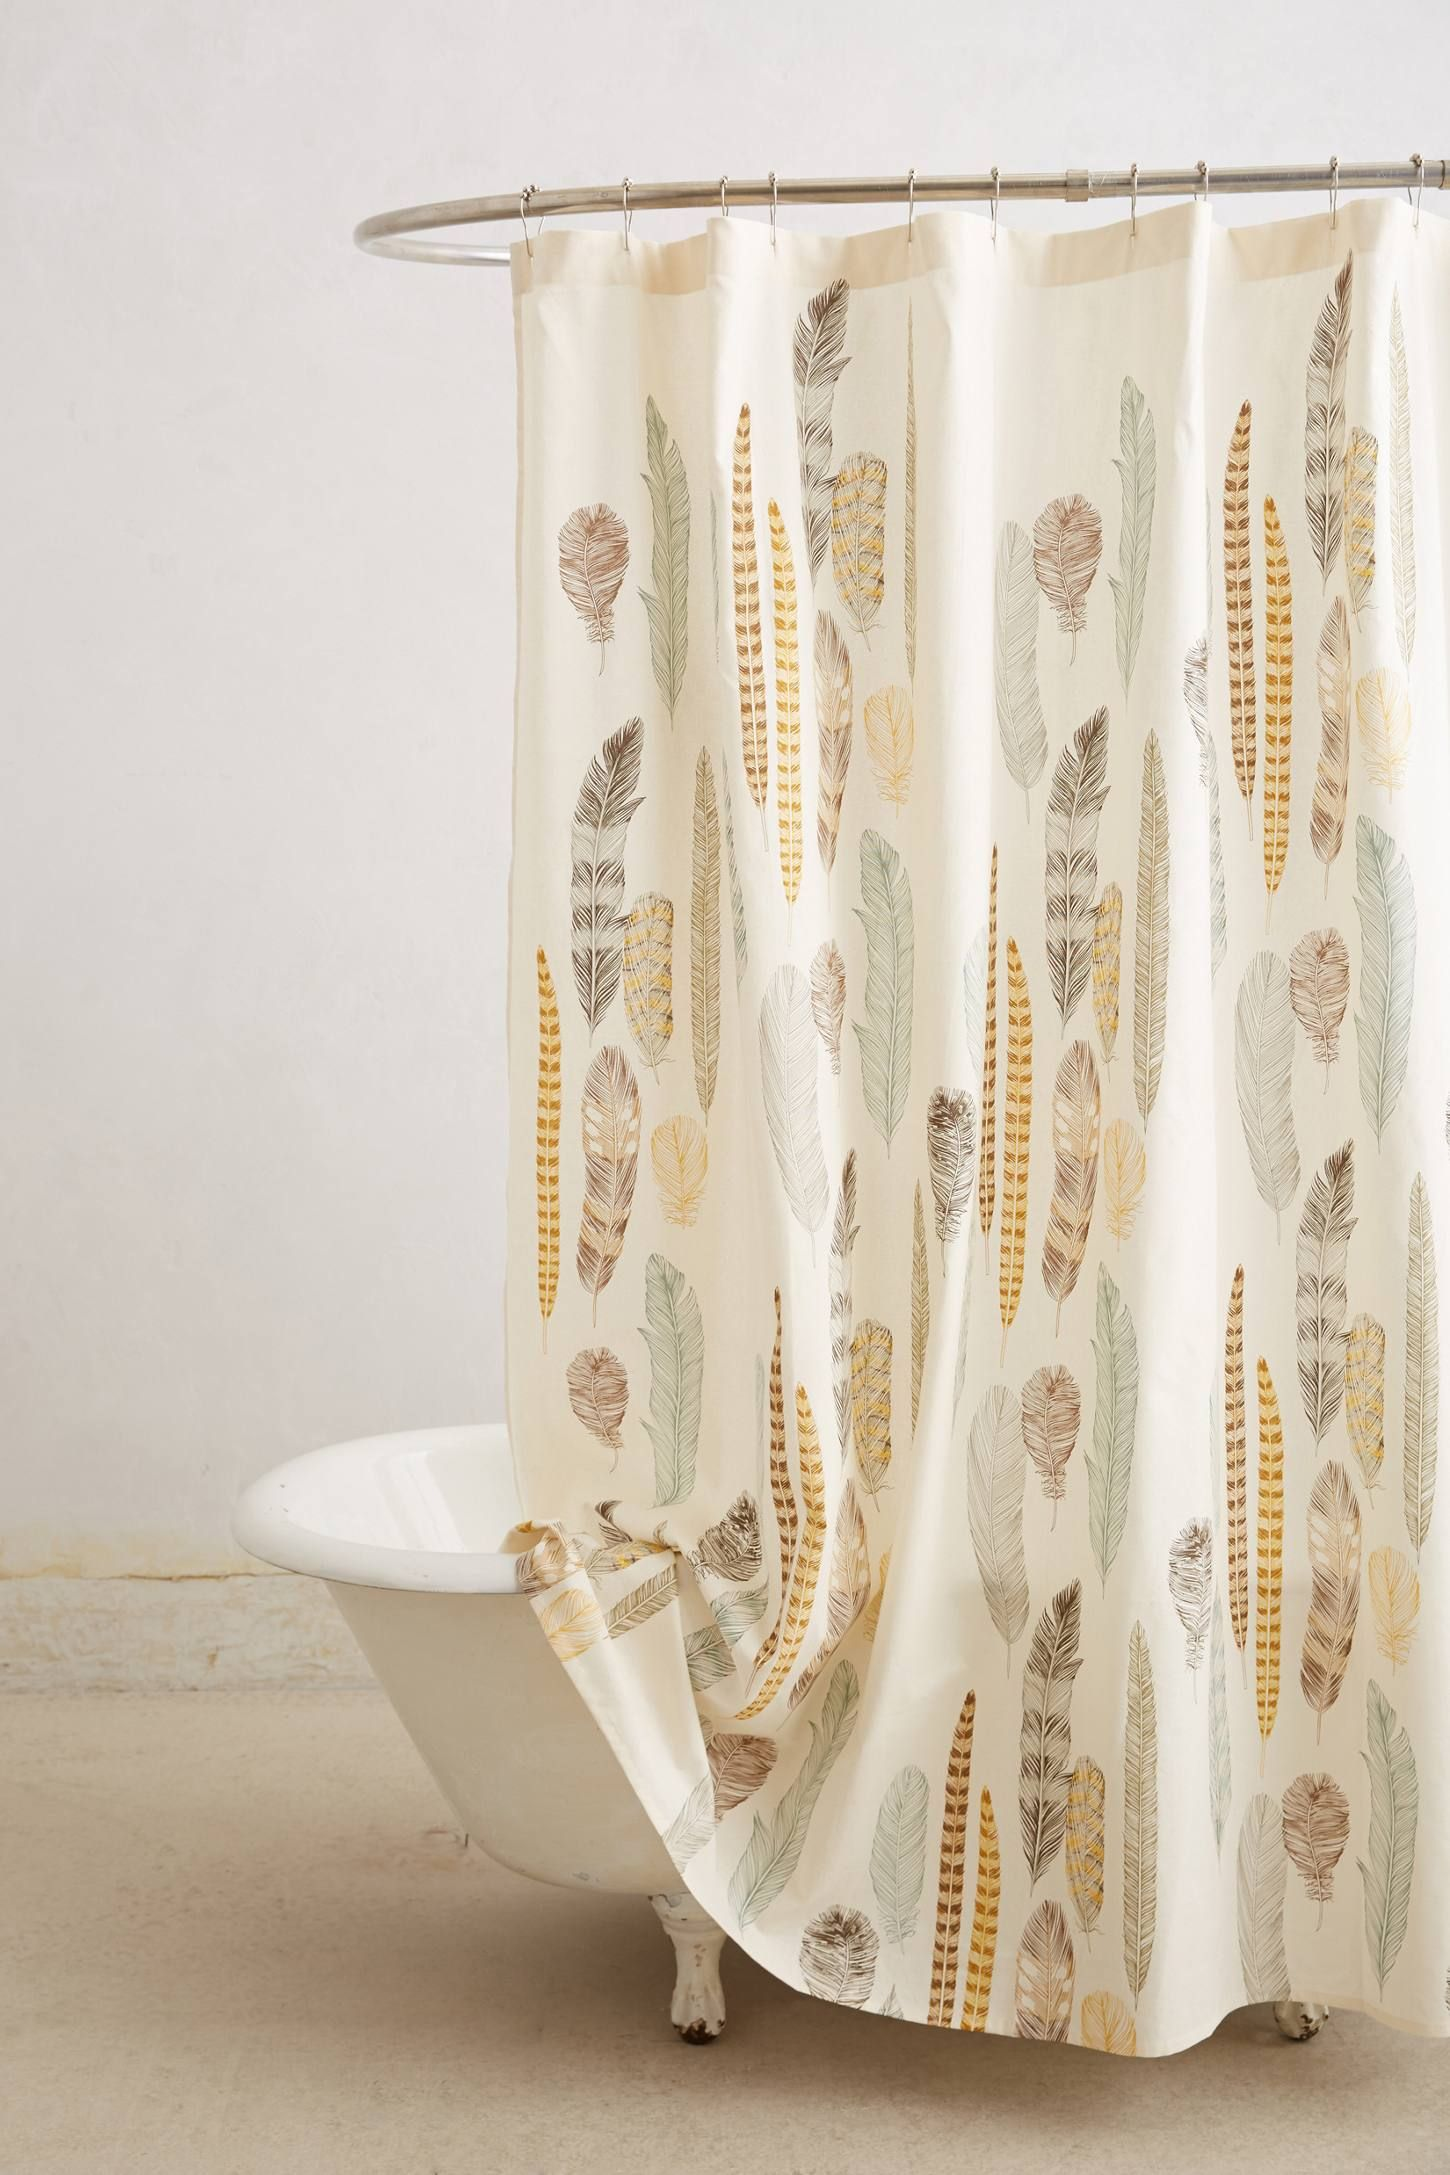 Shower curtain liner pinterest quill bath and house